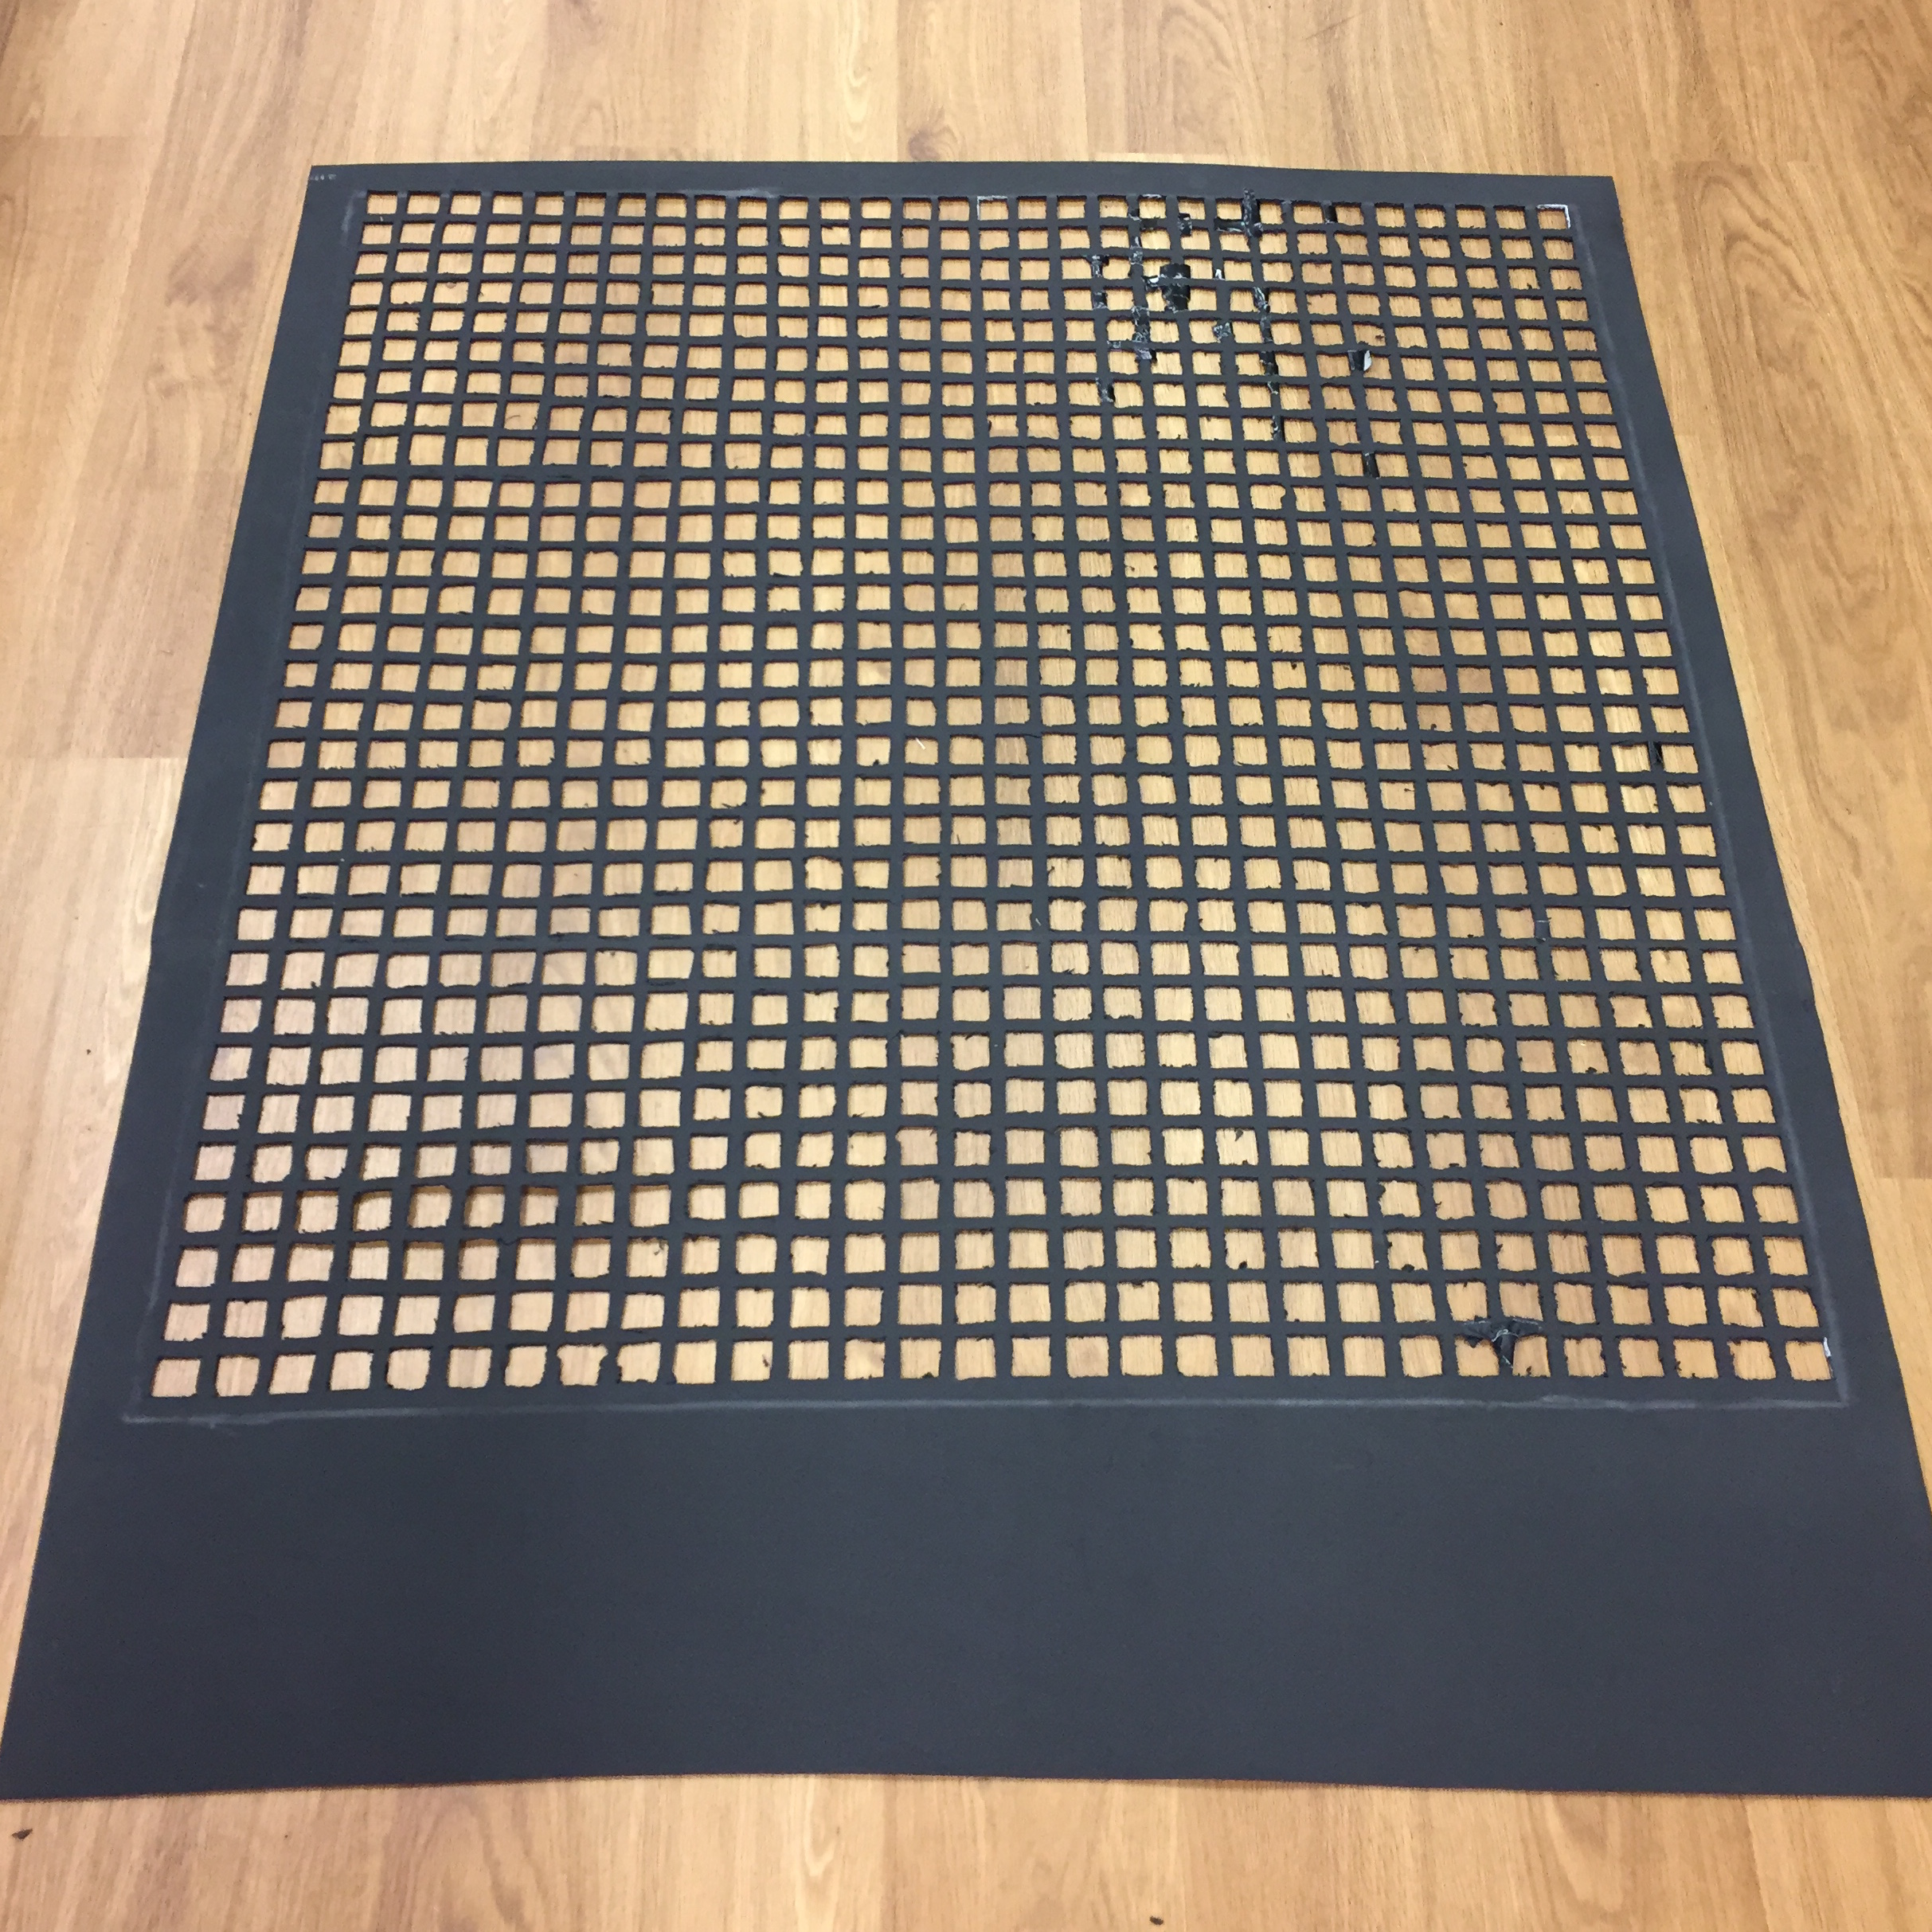 One meter by one meter with 30 by 30 grid made of about 1 inch holes